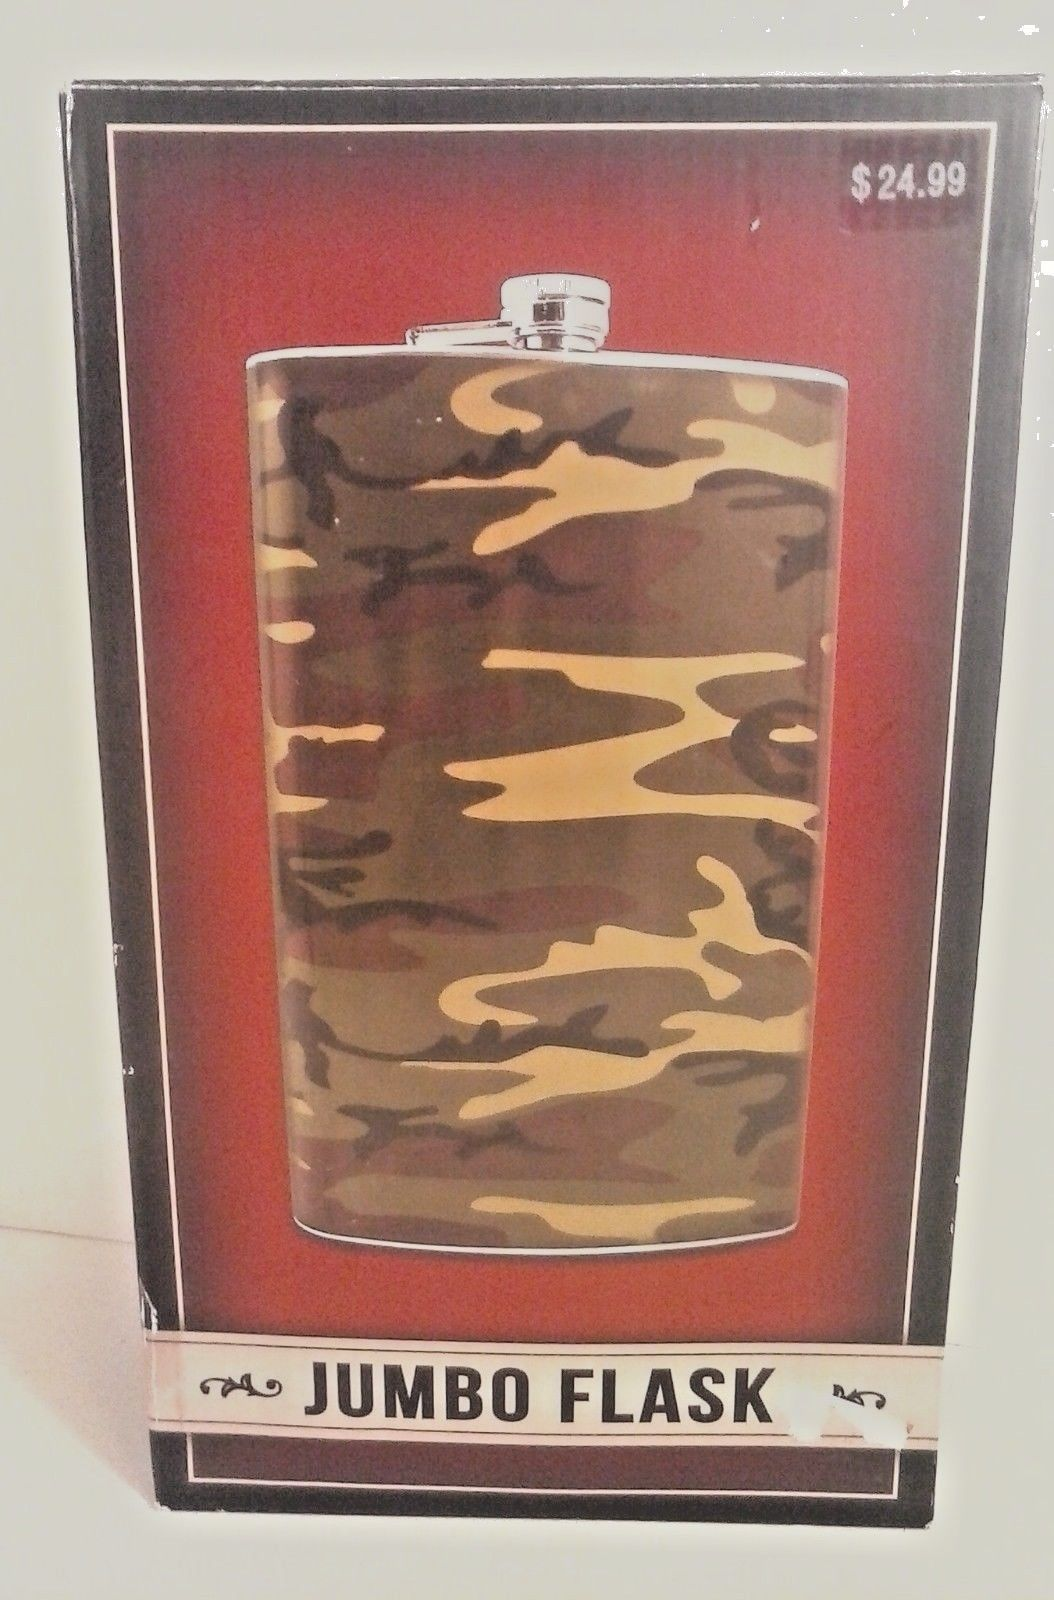 NEW IN BOX LARGE JUMBO FLASK CAMO STAINLESS STEEL 1.8 L. / 60 OZ.